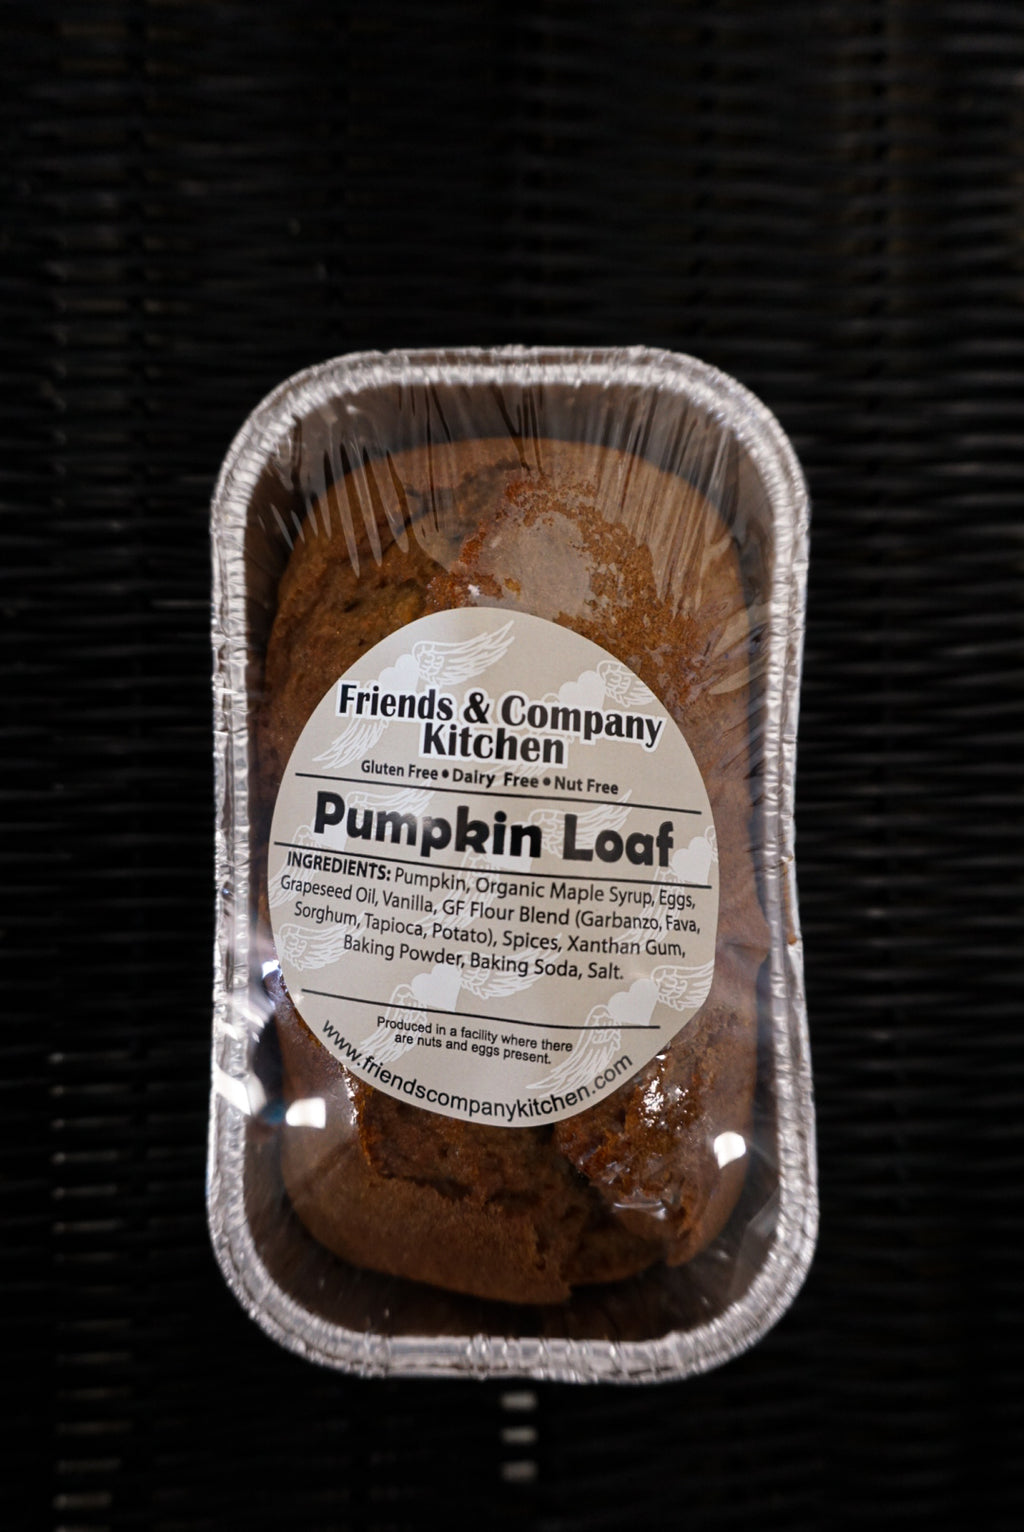 Friends & Company Kitchen Pumpkin Loaf - Westport